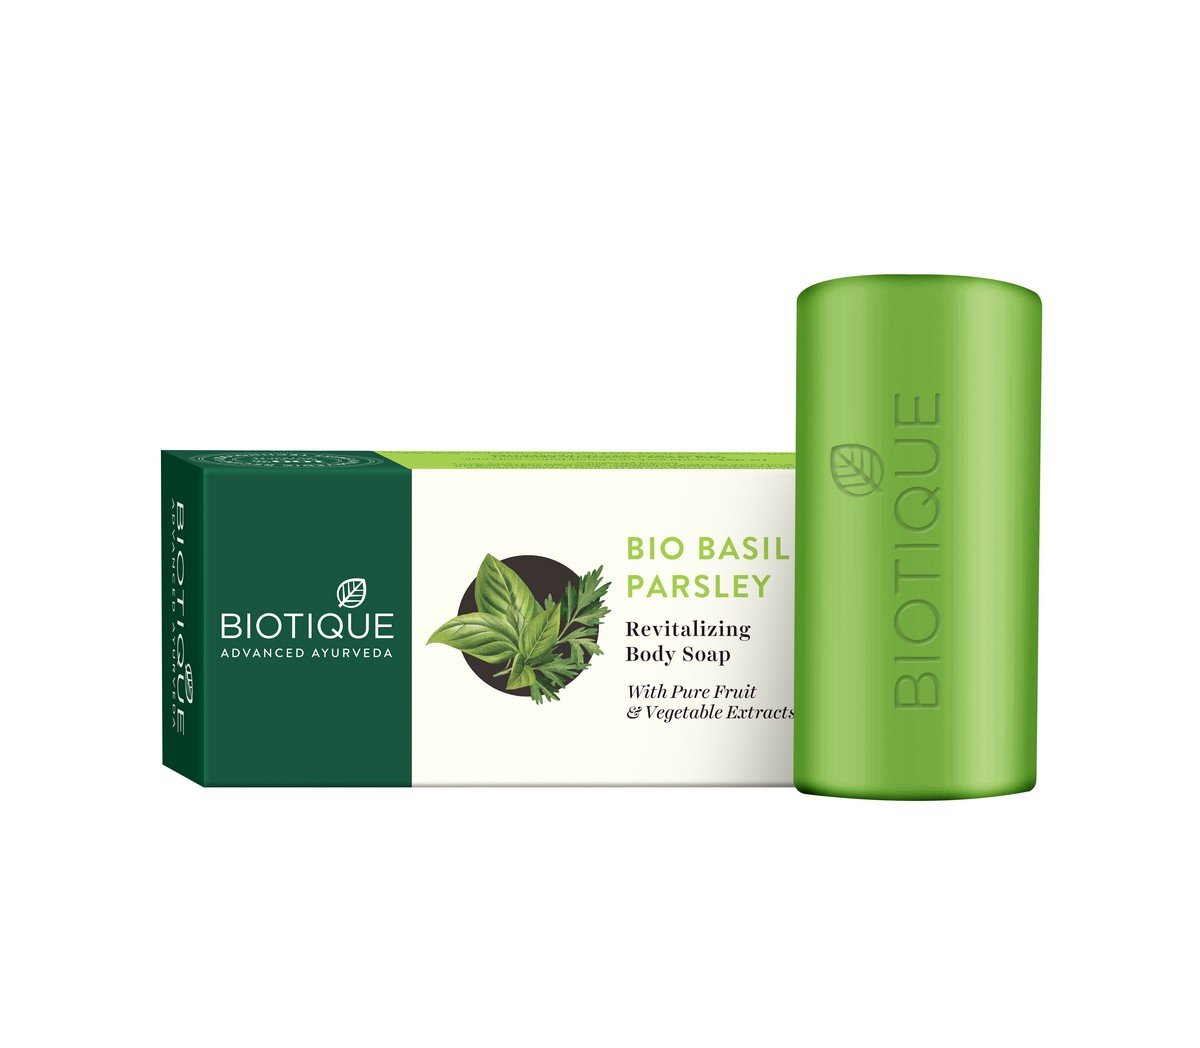 Biotique Bio Basil And Parsley Revitalizing Body Soap